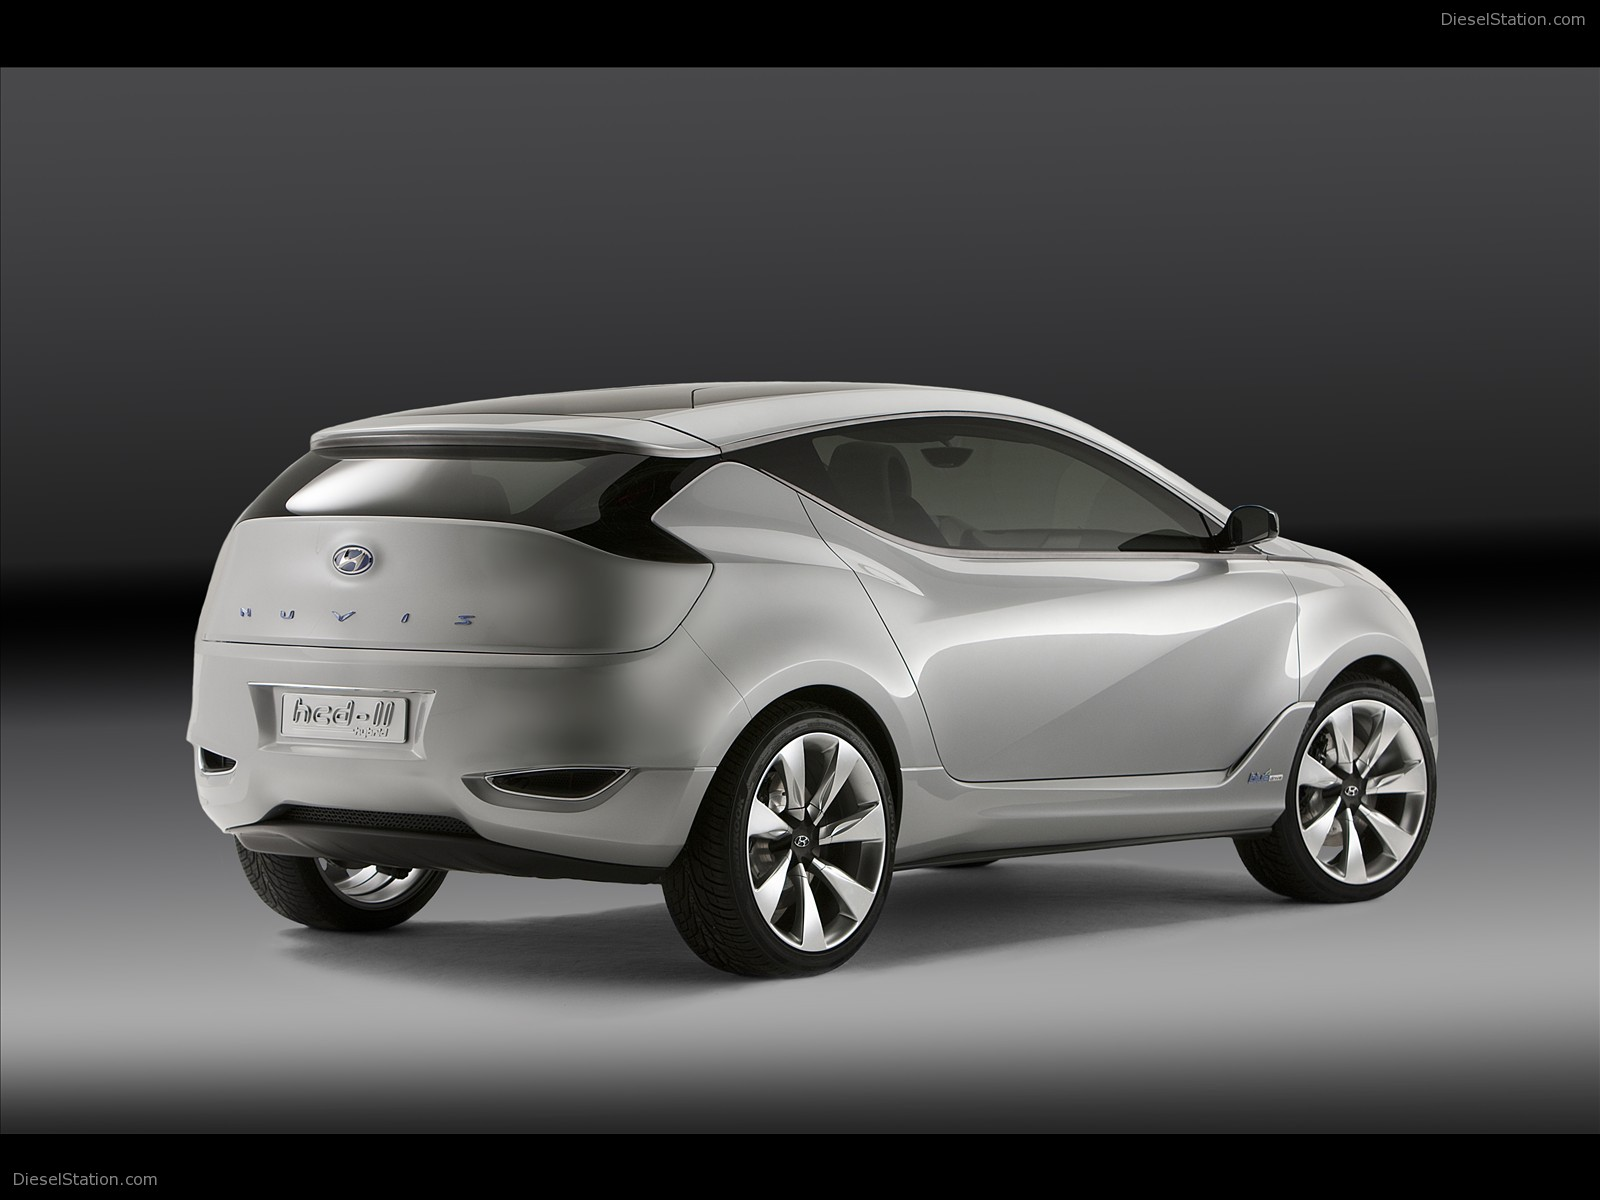 Hyundai nuvis photo - 5